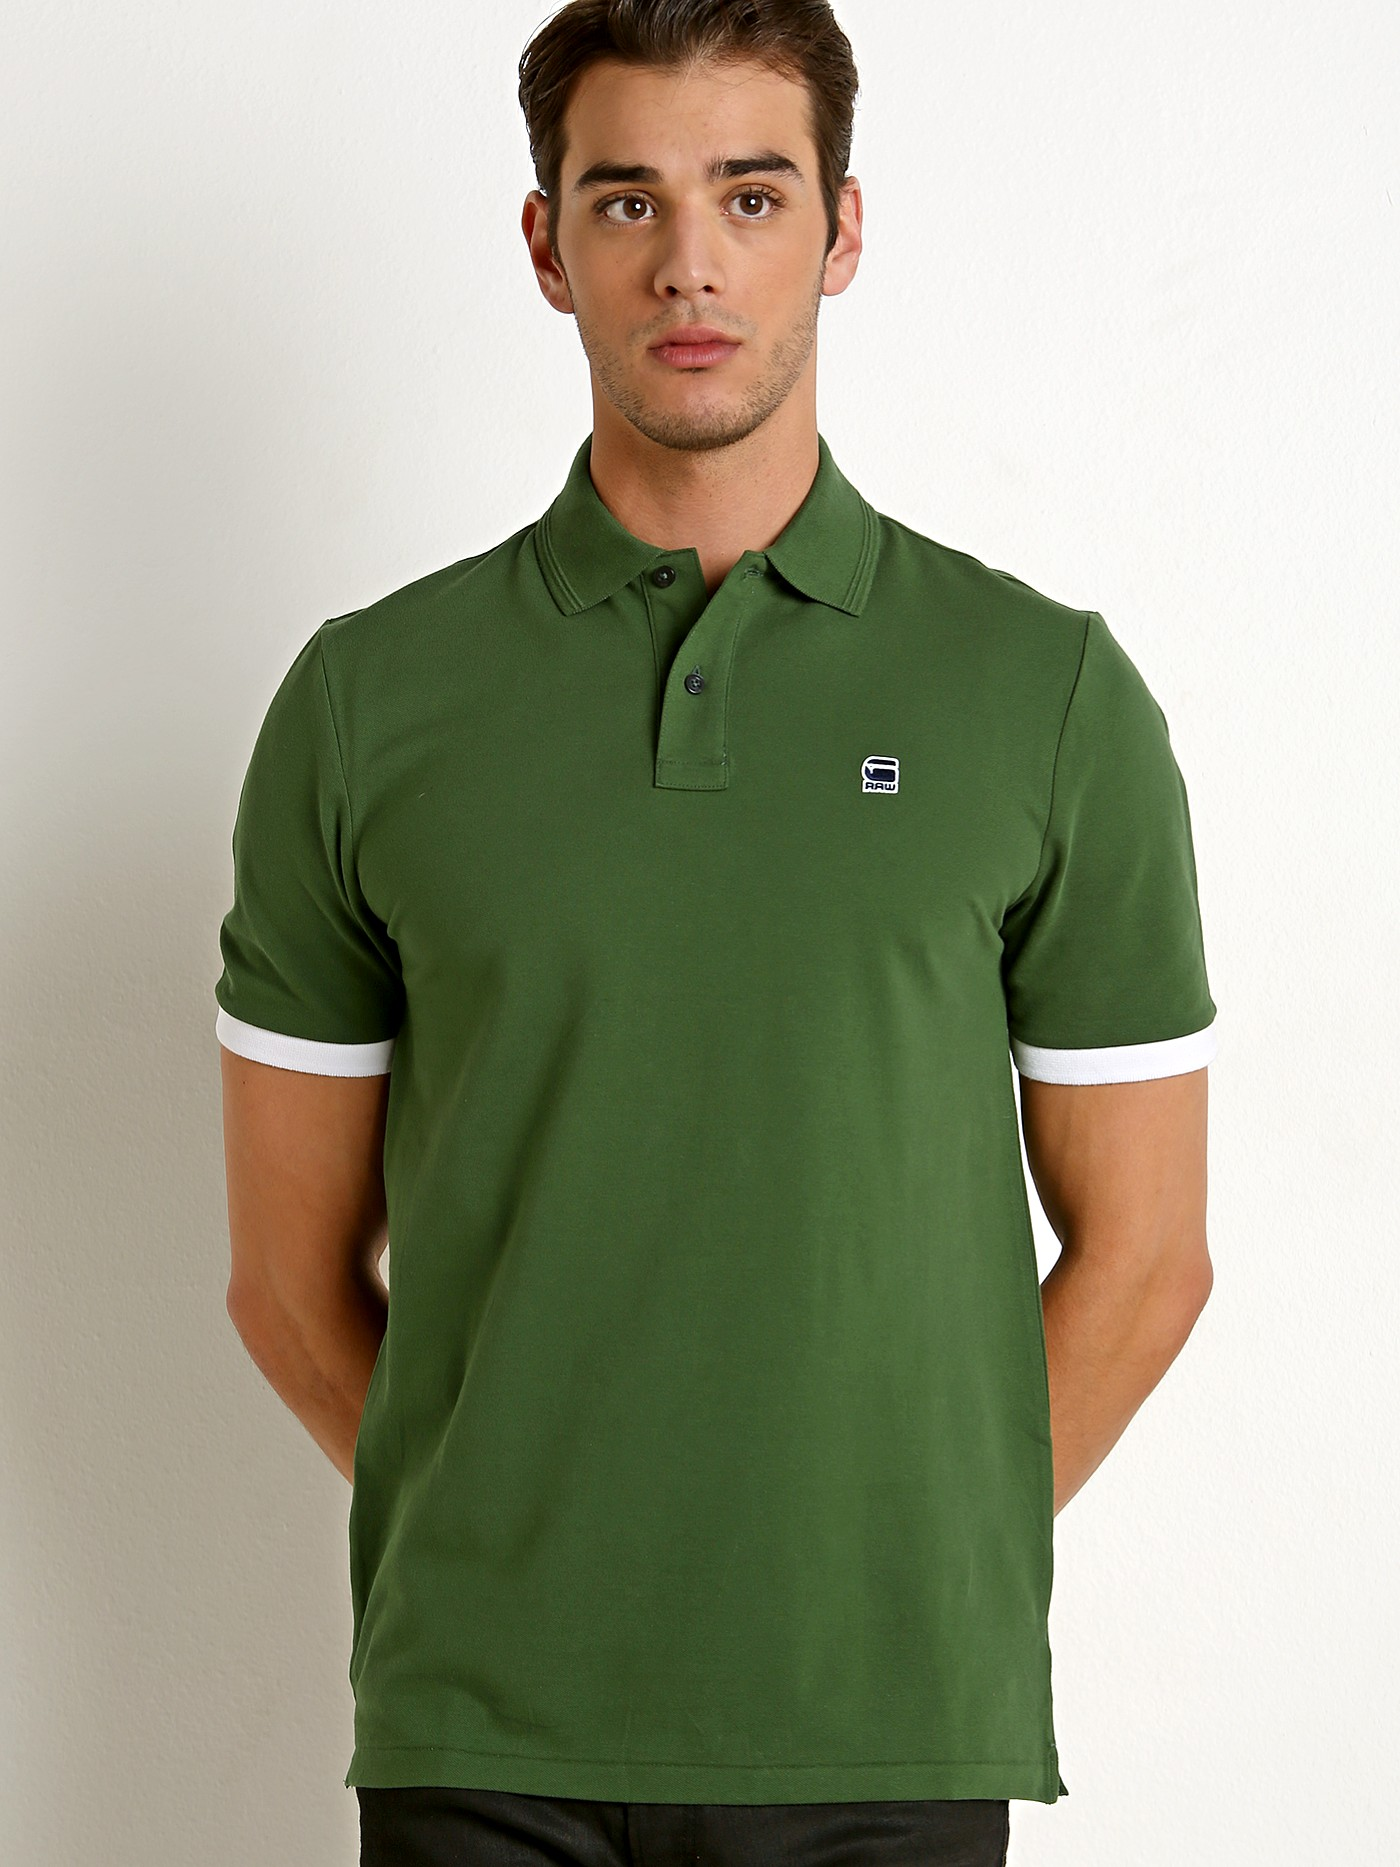 Polo Shirt With Black Dress Pants Cotswold Hire